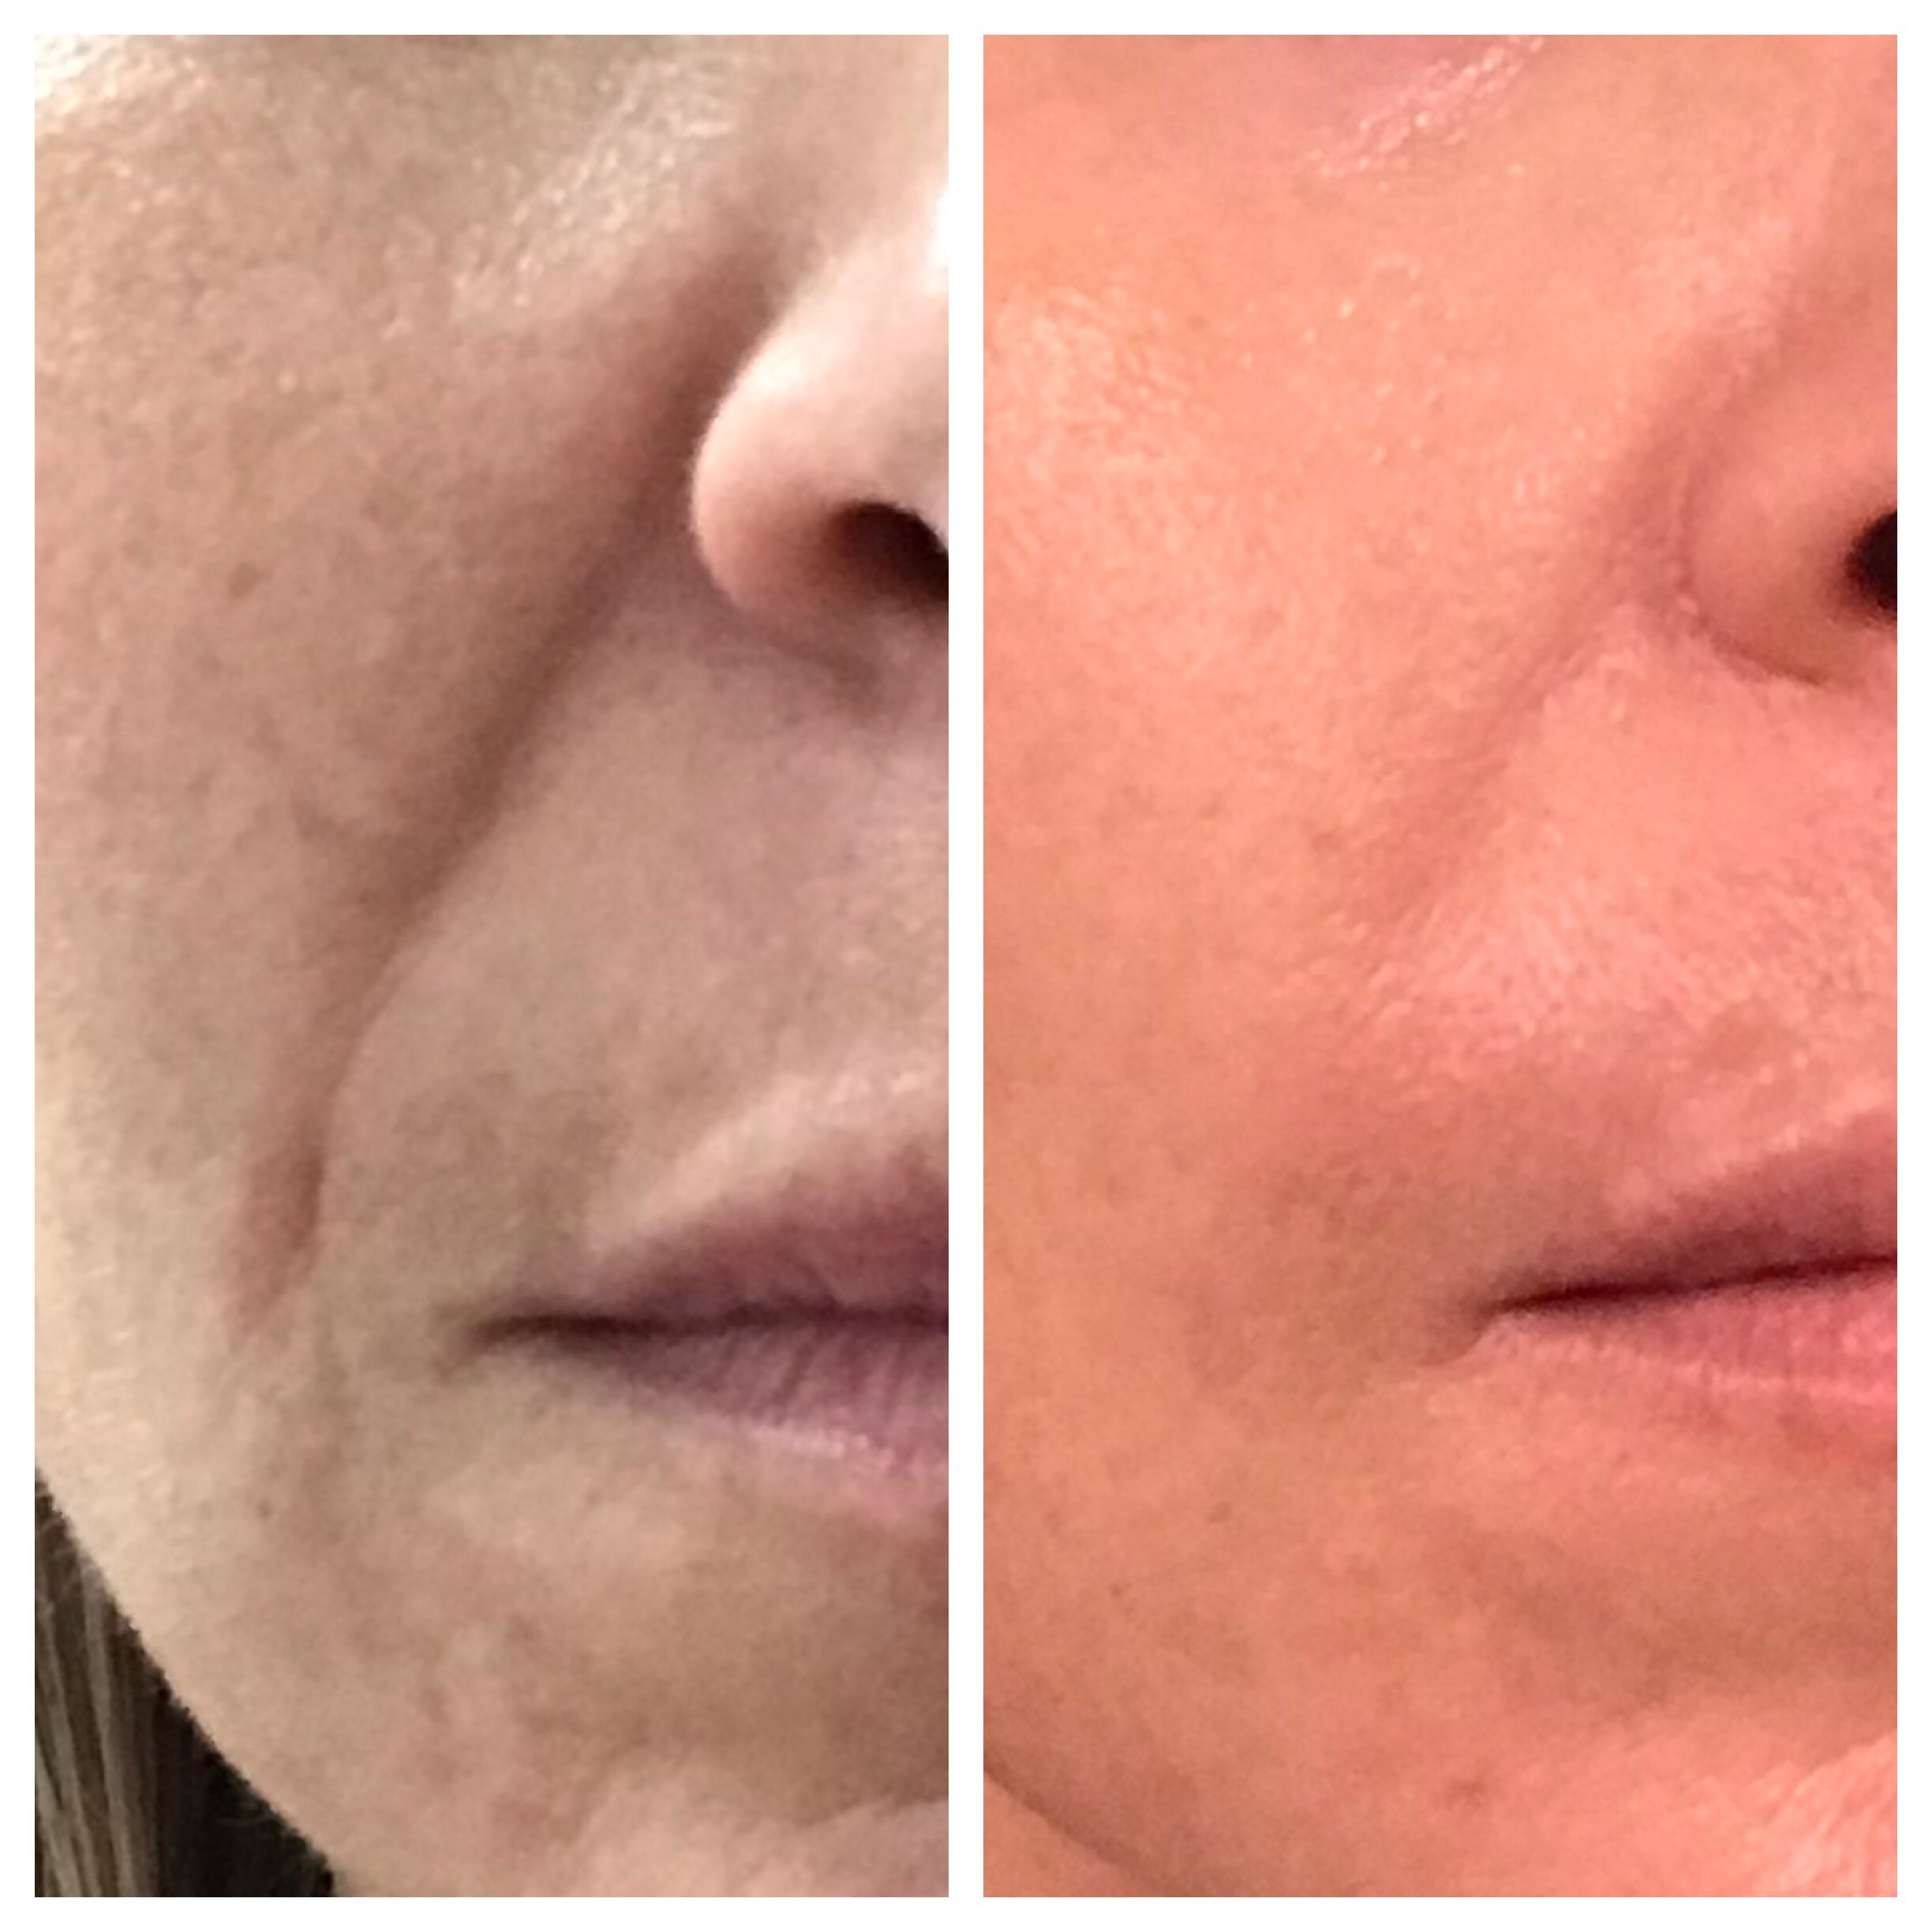 Before/After filler to nasolabial fold